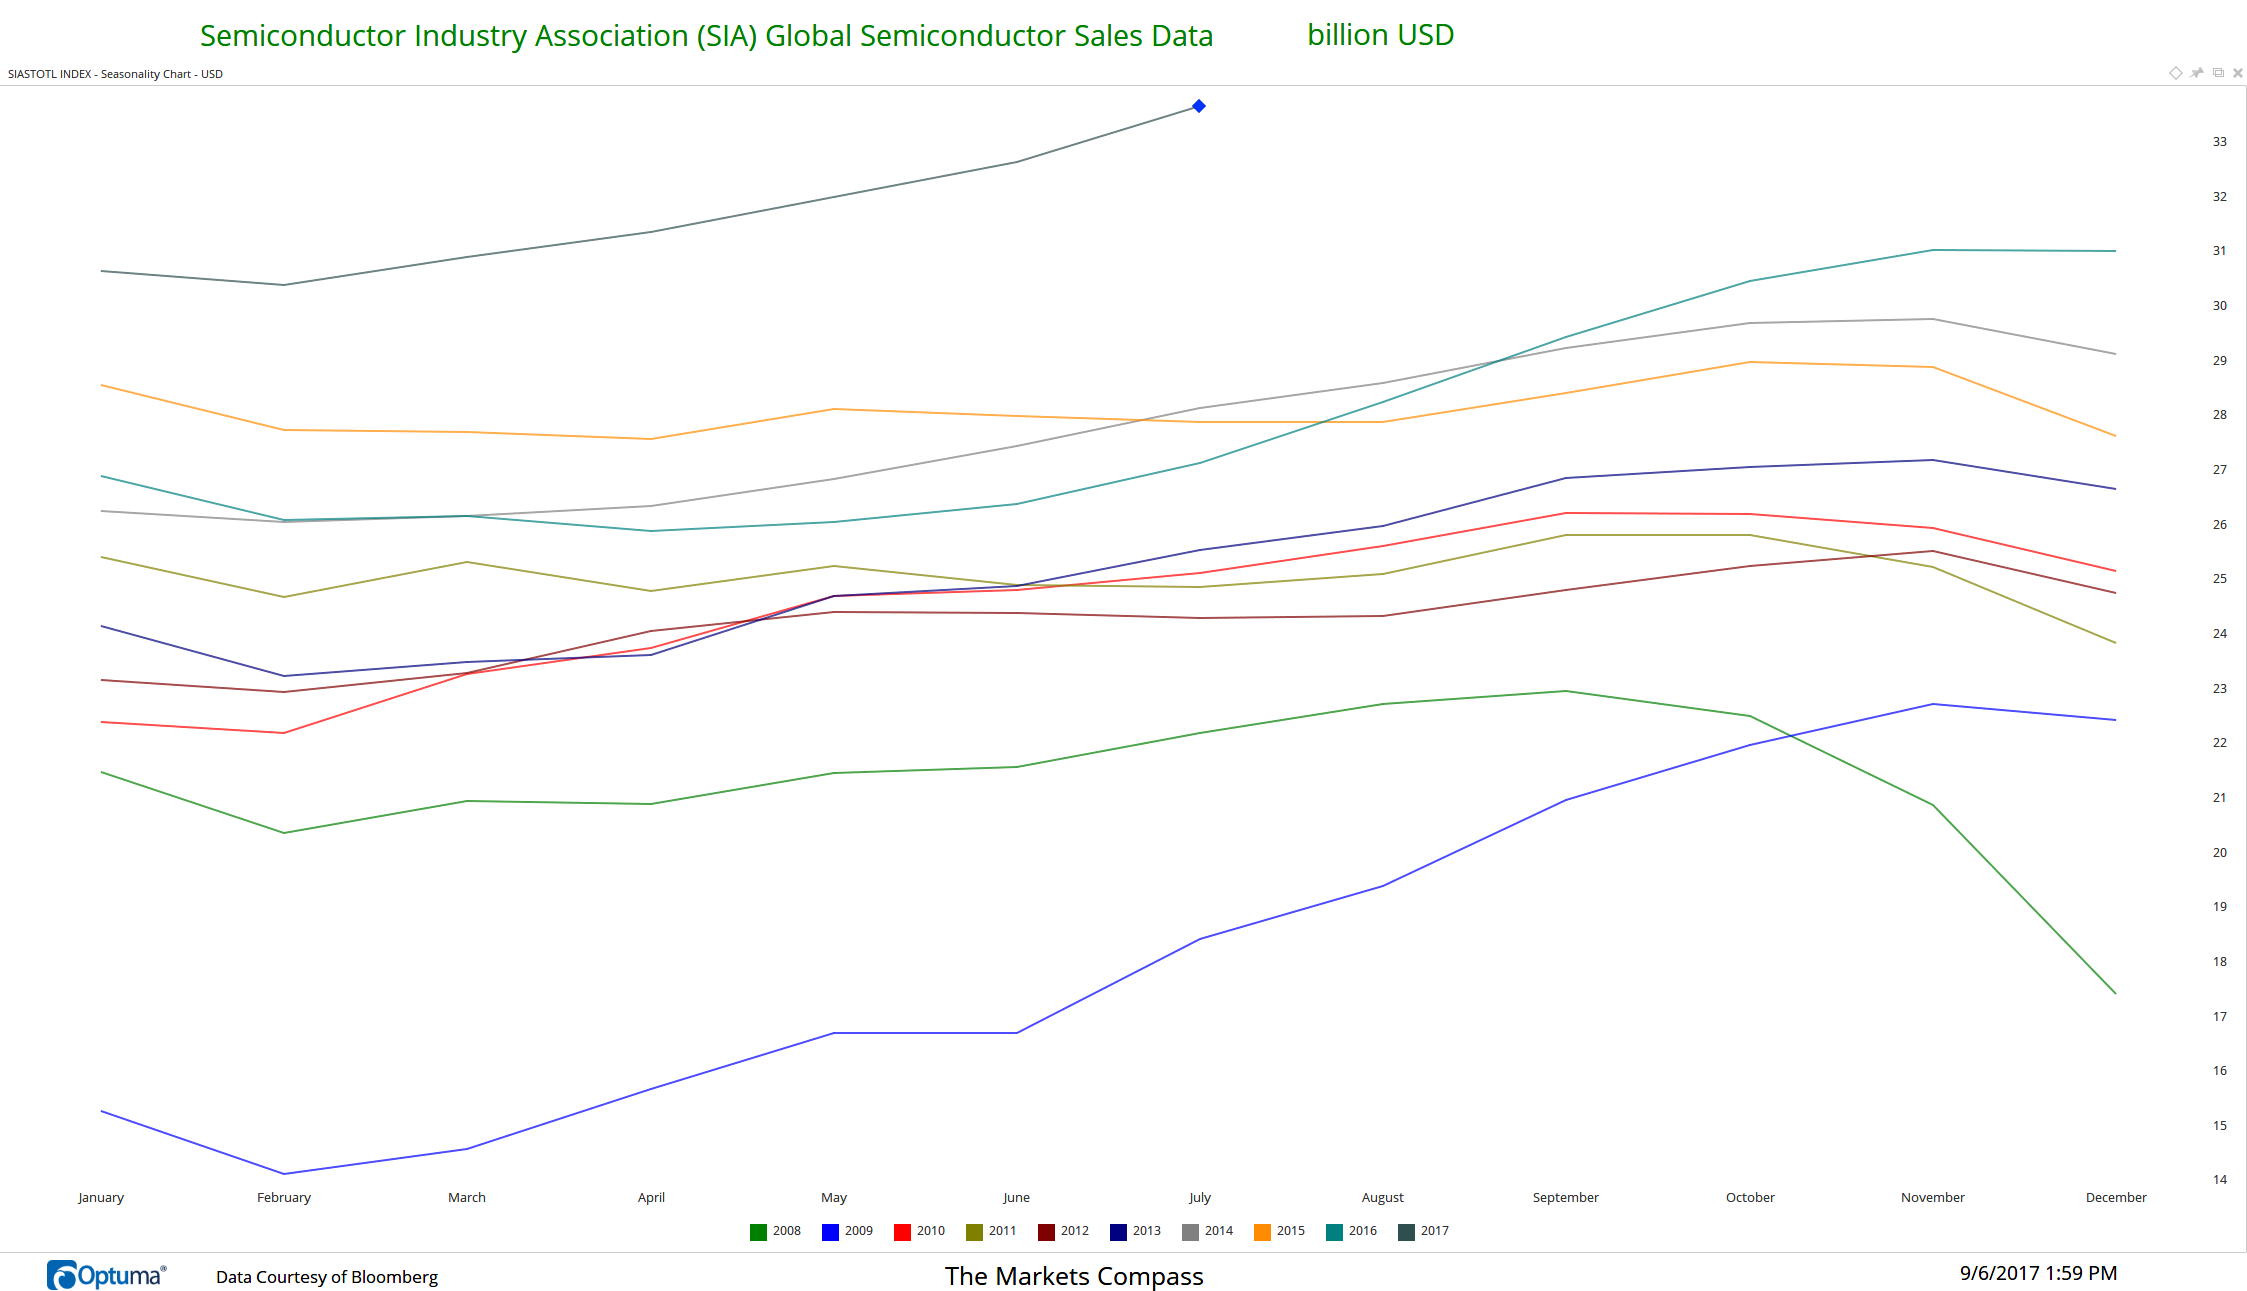 Worldwide Semiconductor Sales continue to accelerate...